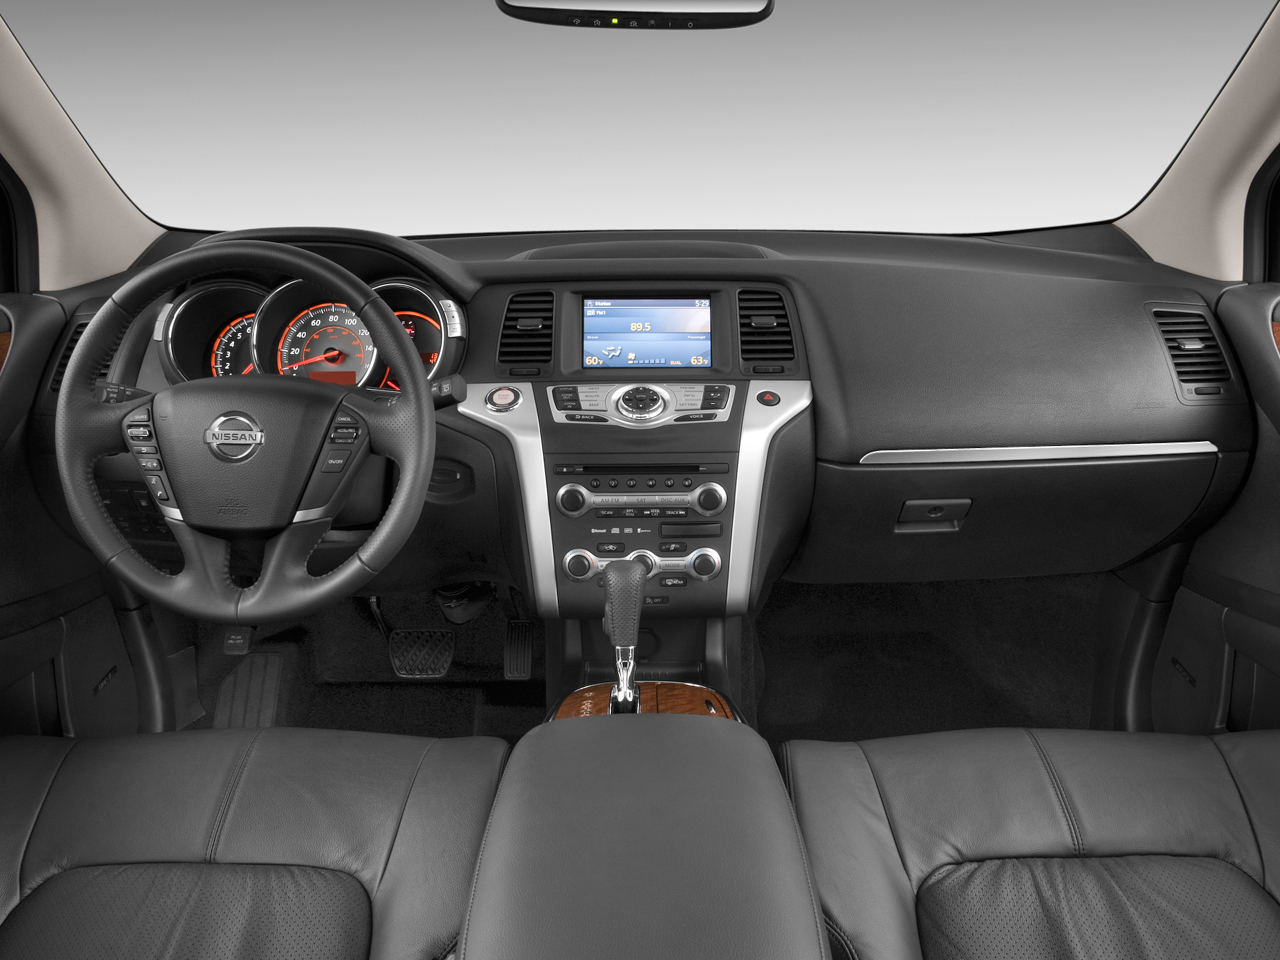 2009 Nissan Murano - Nissan Crossover SUV Review ...